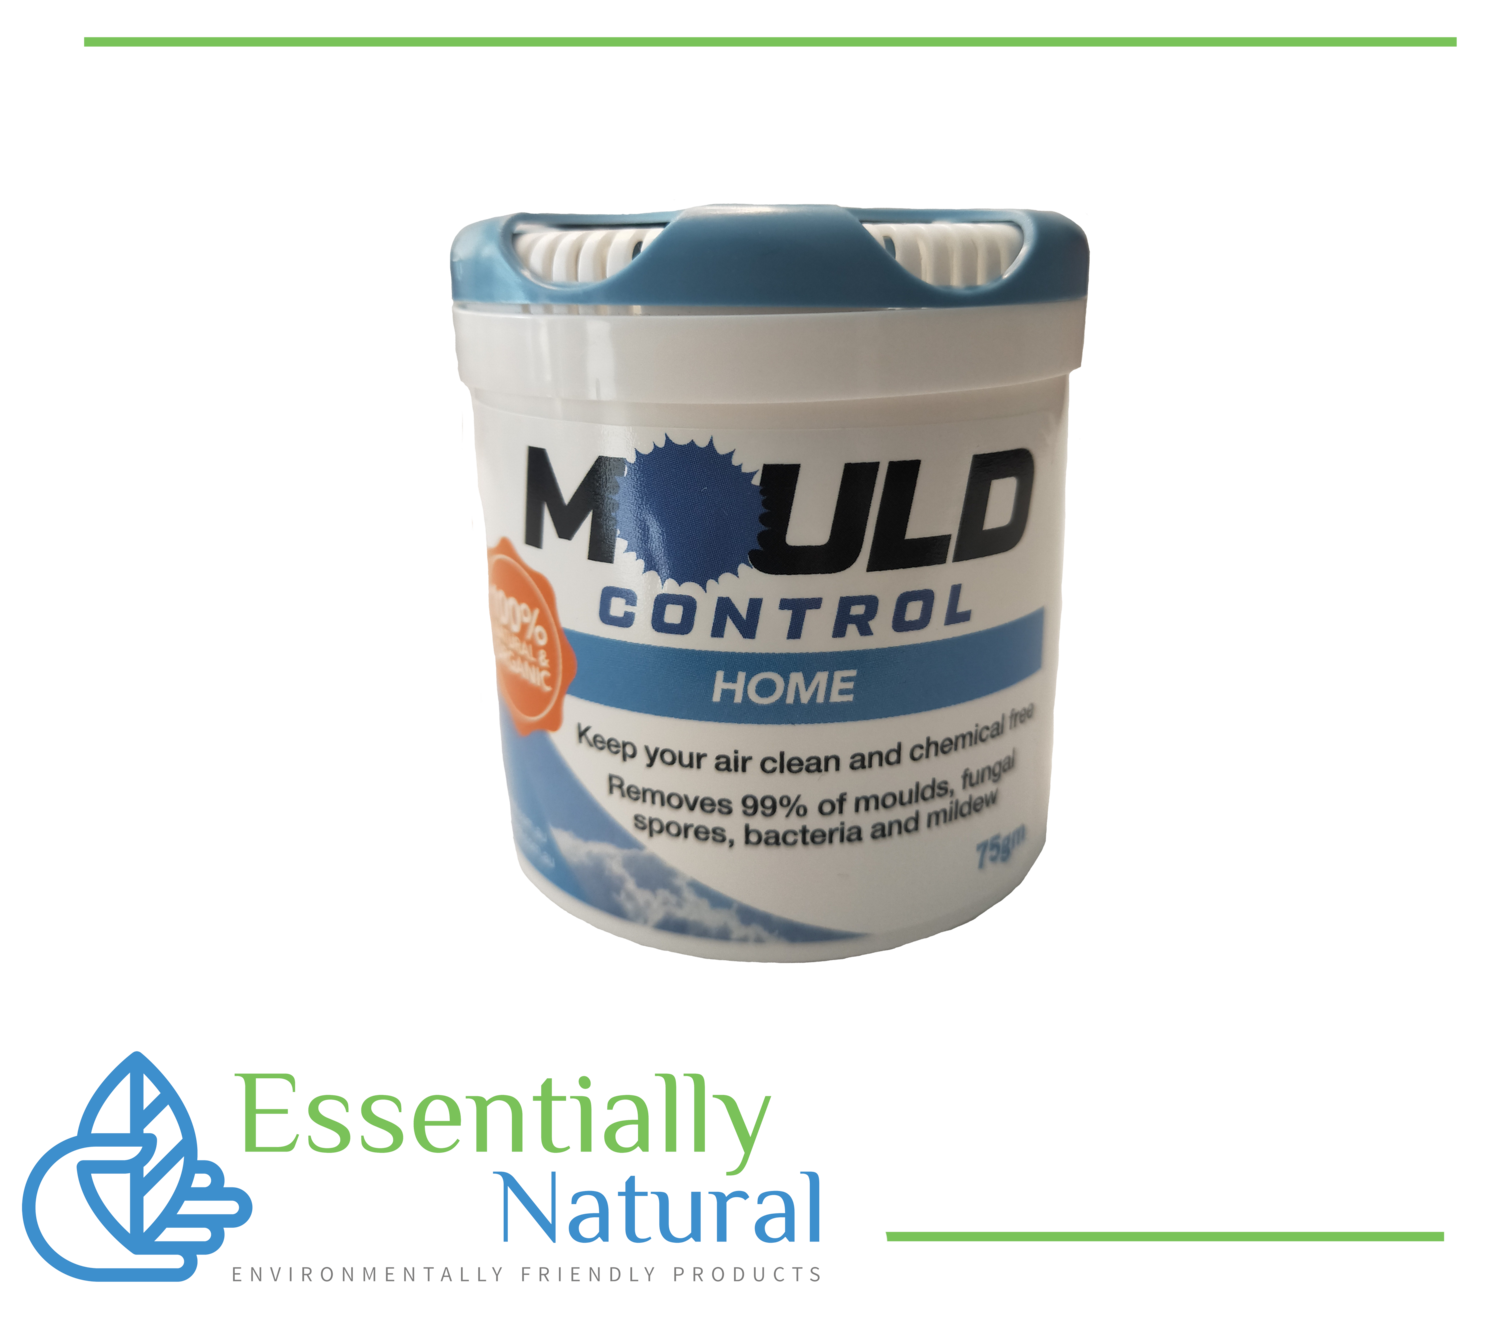 Mould Control - Home 75gm